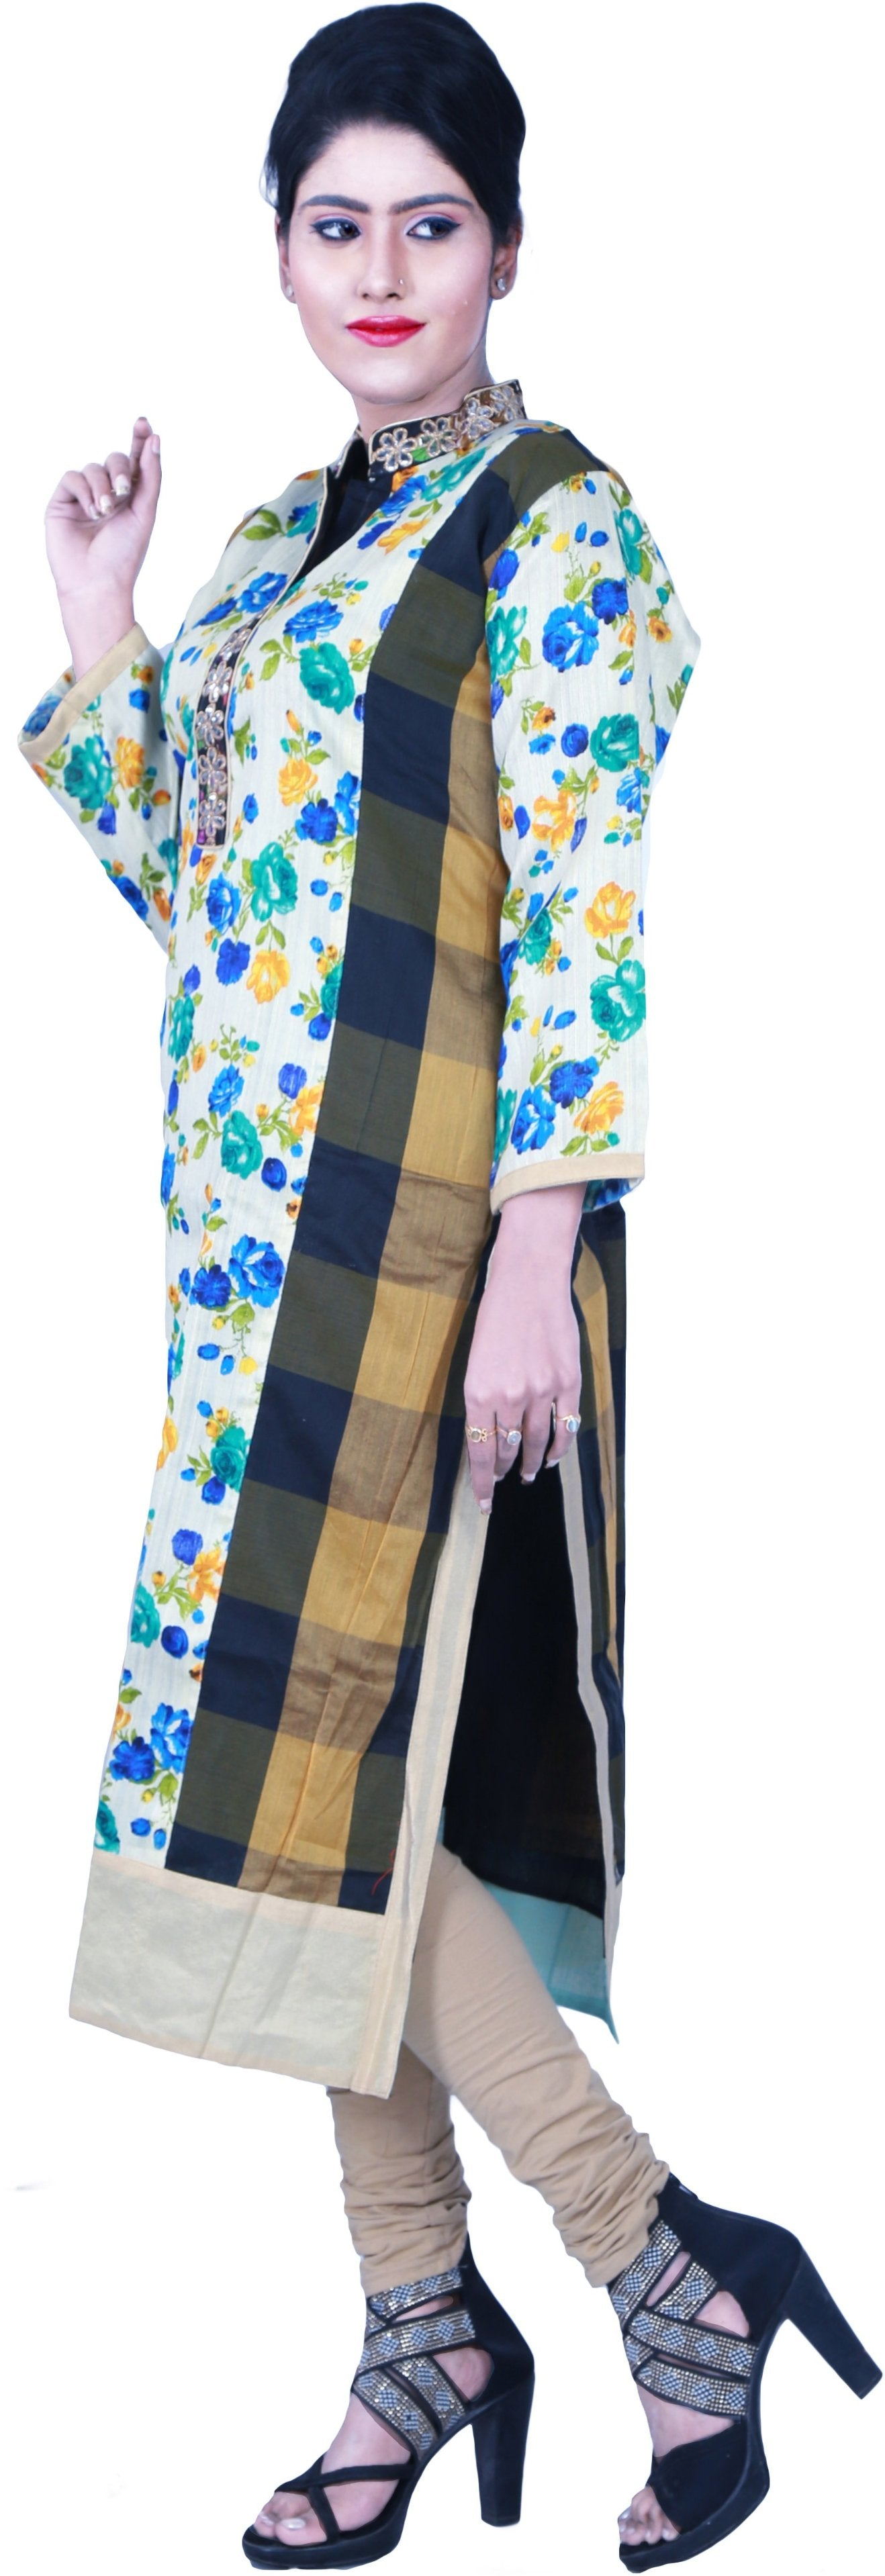 SMSAREE Multi-Colour Designer Casual Partywear Raw Silk Floral Printed Gota & Zari Hand Embroidery Work Stylish Women Kurti Kurta With Free Matching Leggings KB284